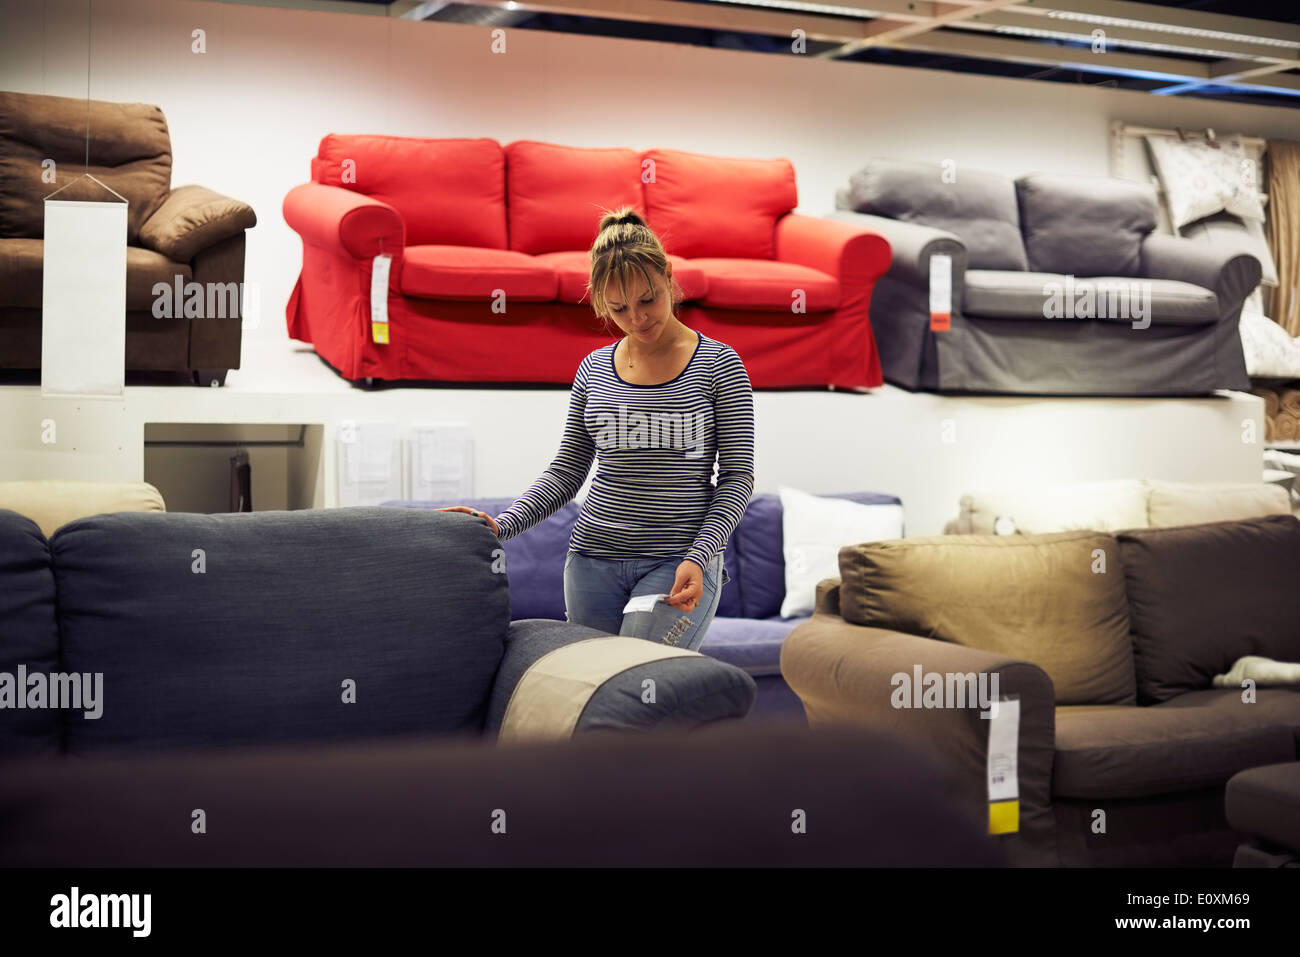 Young hispanic woman shopping for mobilier, canapé et décoration en magasin Photo Stock